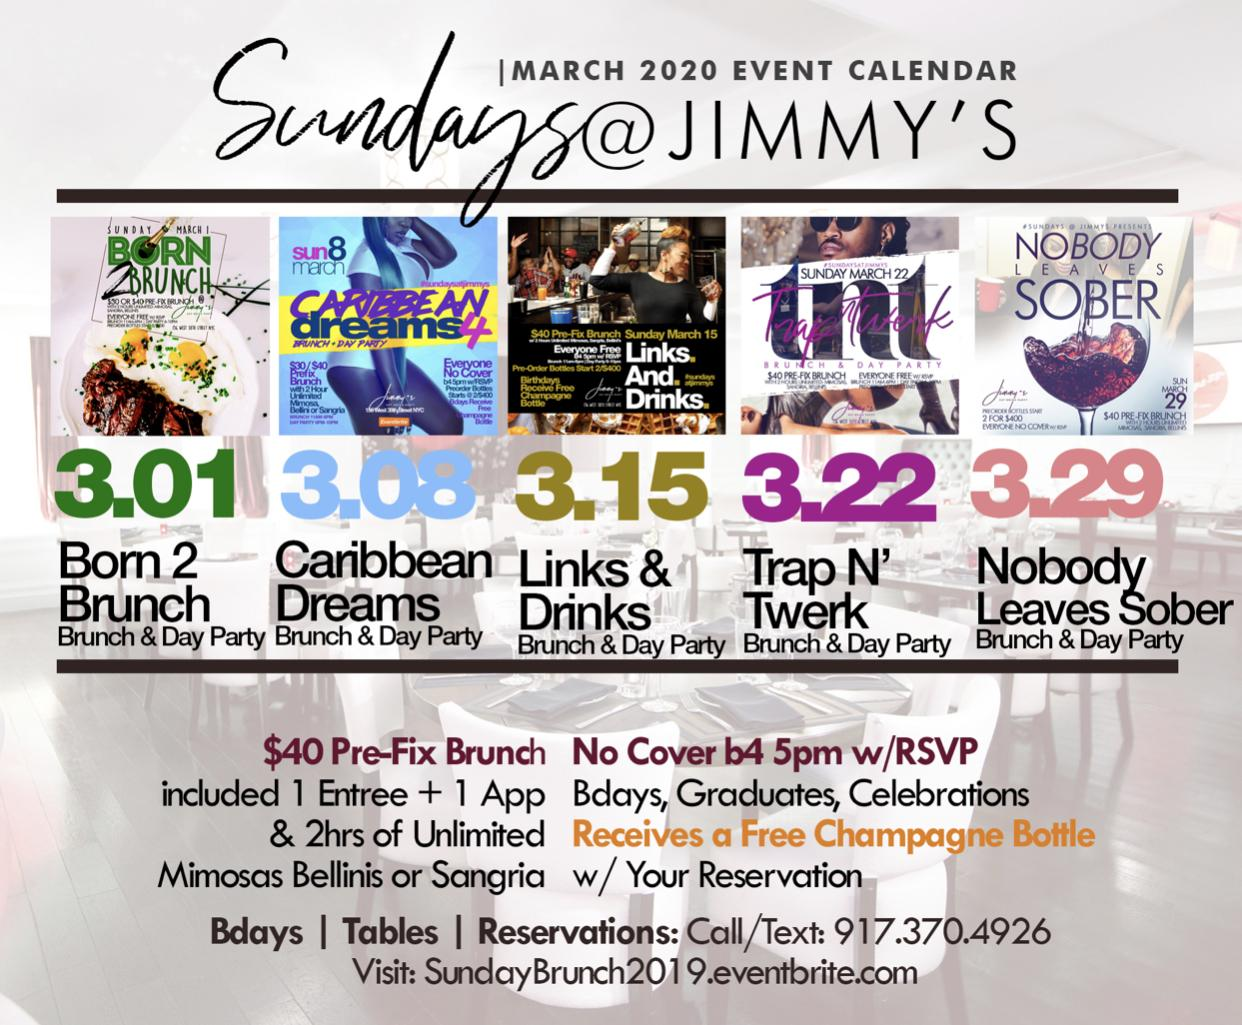 Sunday 2hr Open Bar Brunch & Day Party, Bdays Free, Live Music